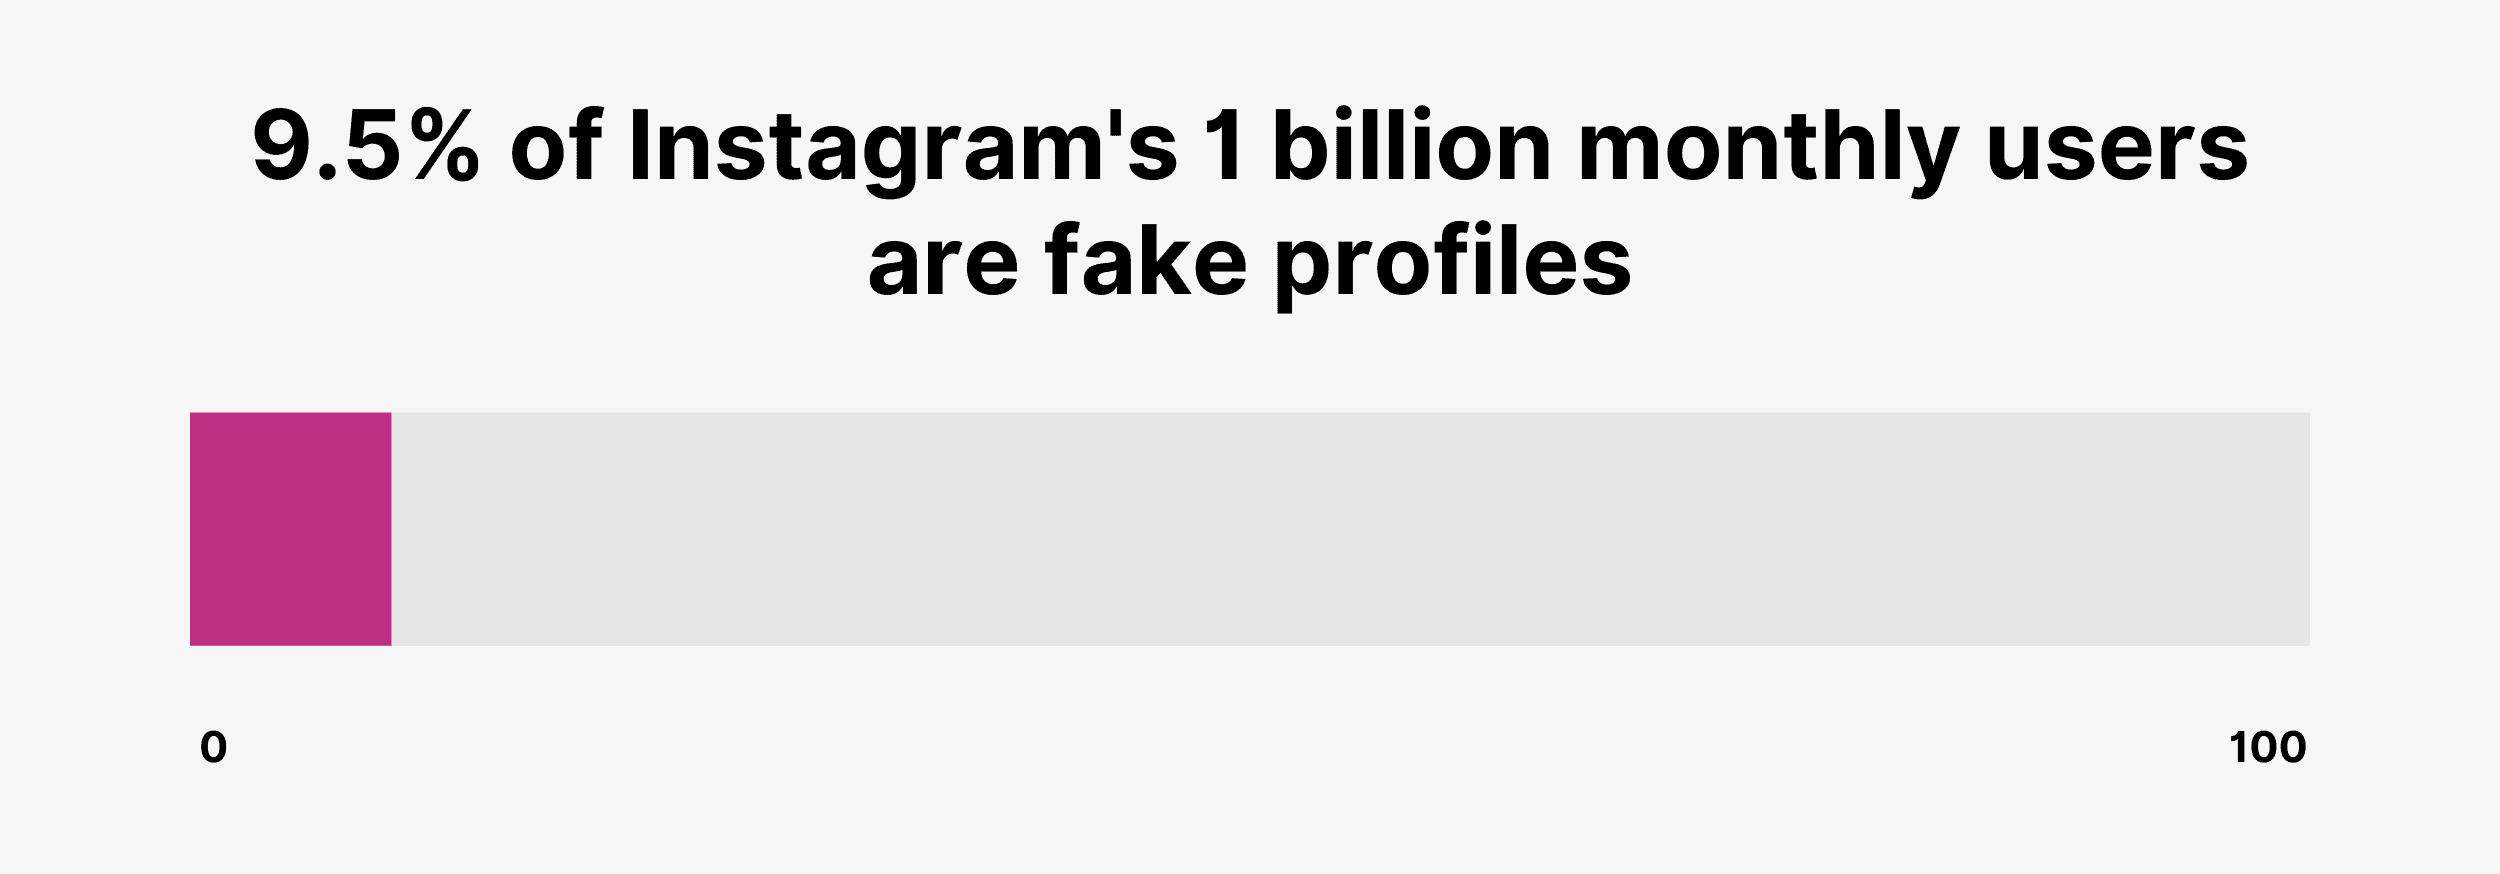 9.5% of Instagram's 1 billion monthly users are fake profiles